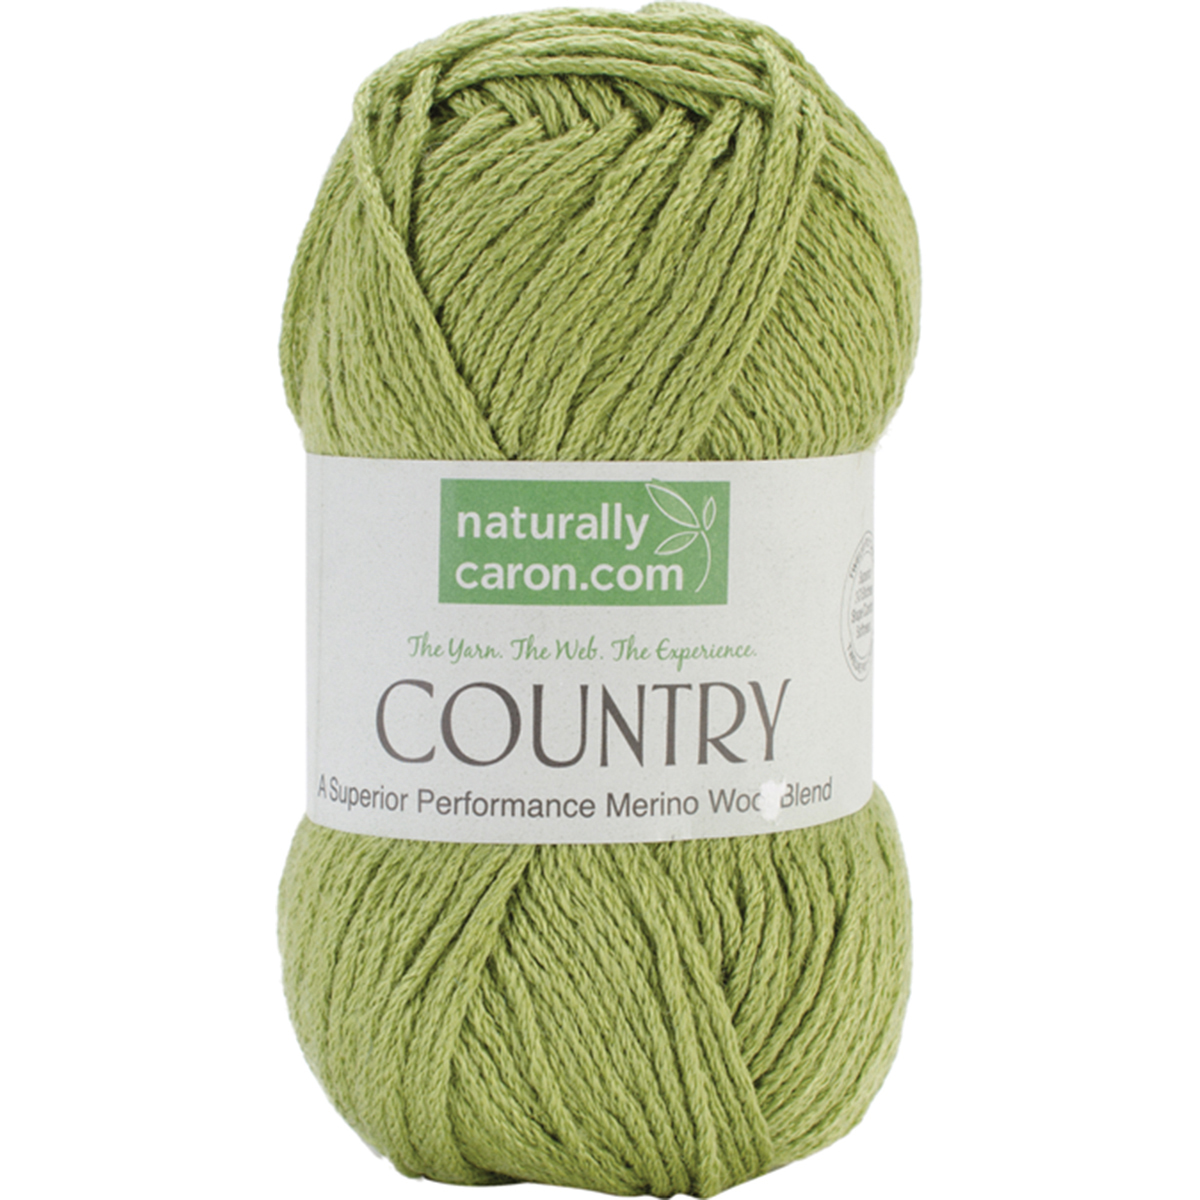 Cheap Yarn : Home ? Yarn On Line Discount Yarn ? Caron Yarn Online ? Naturally ...